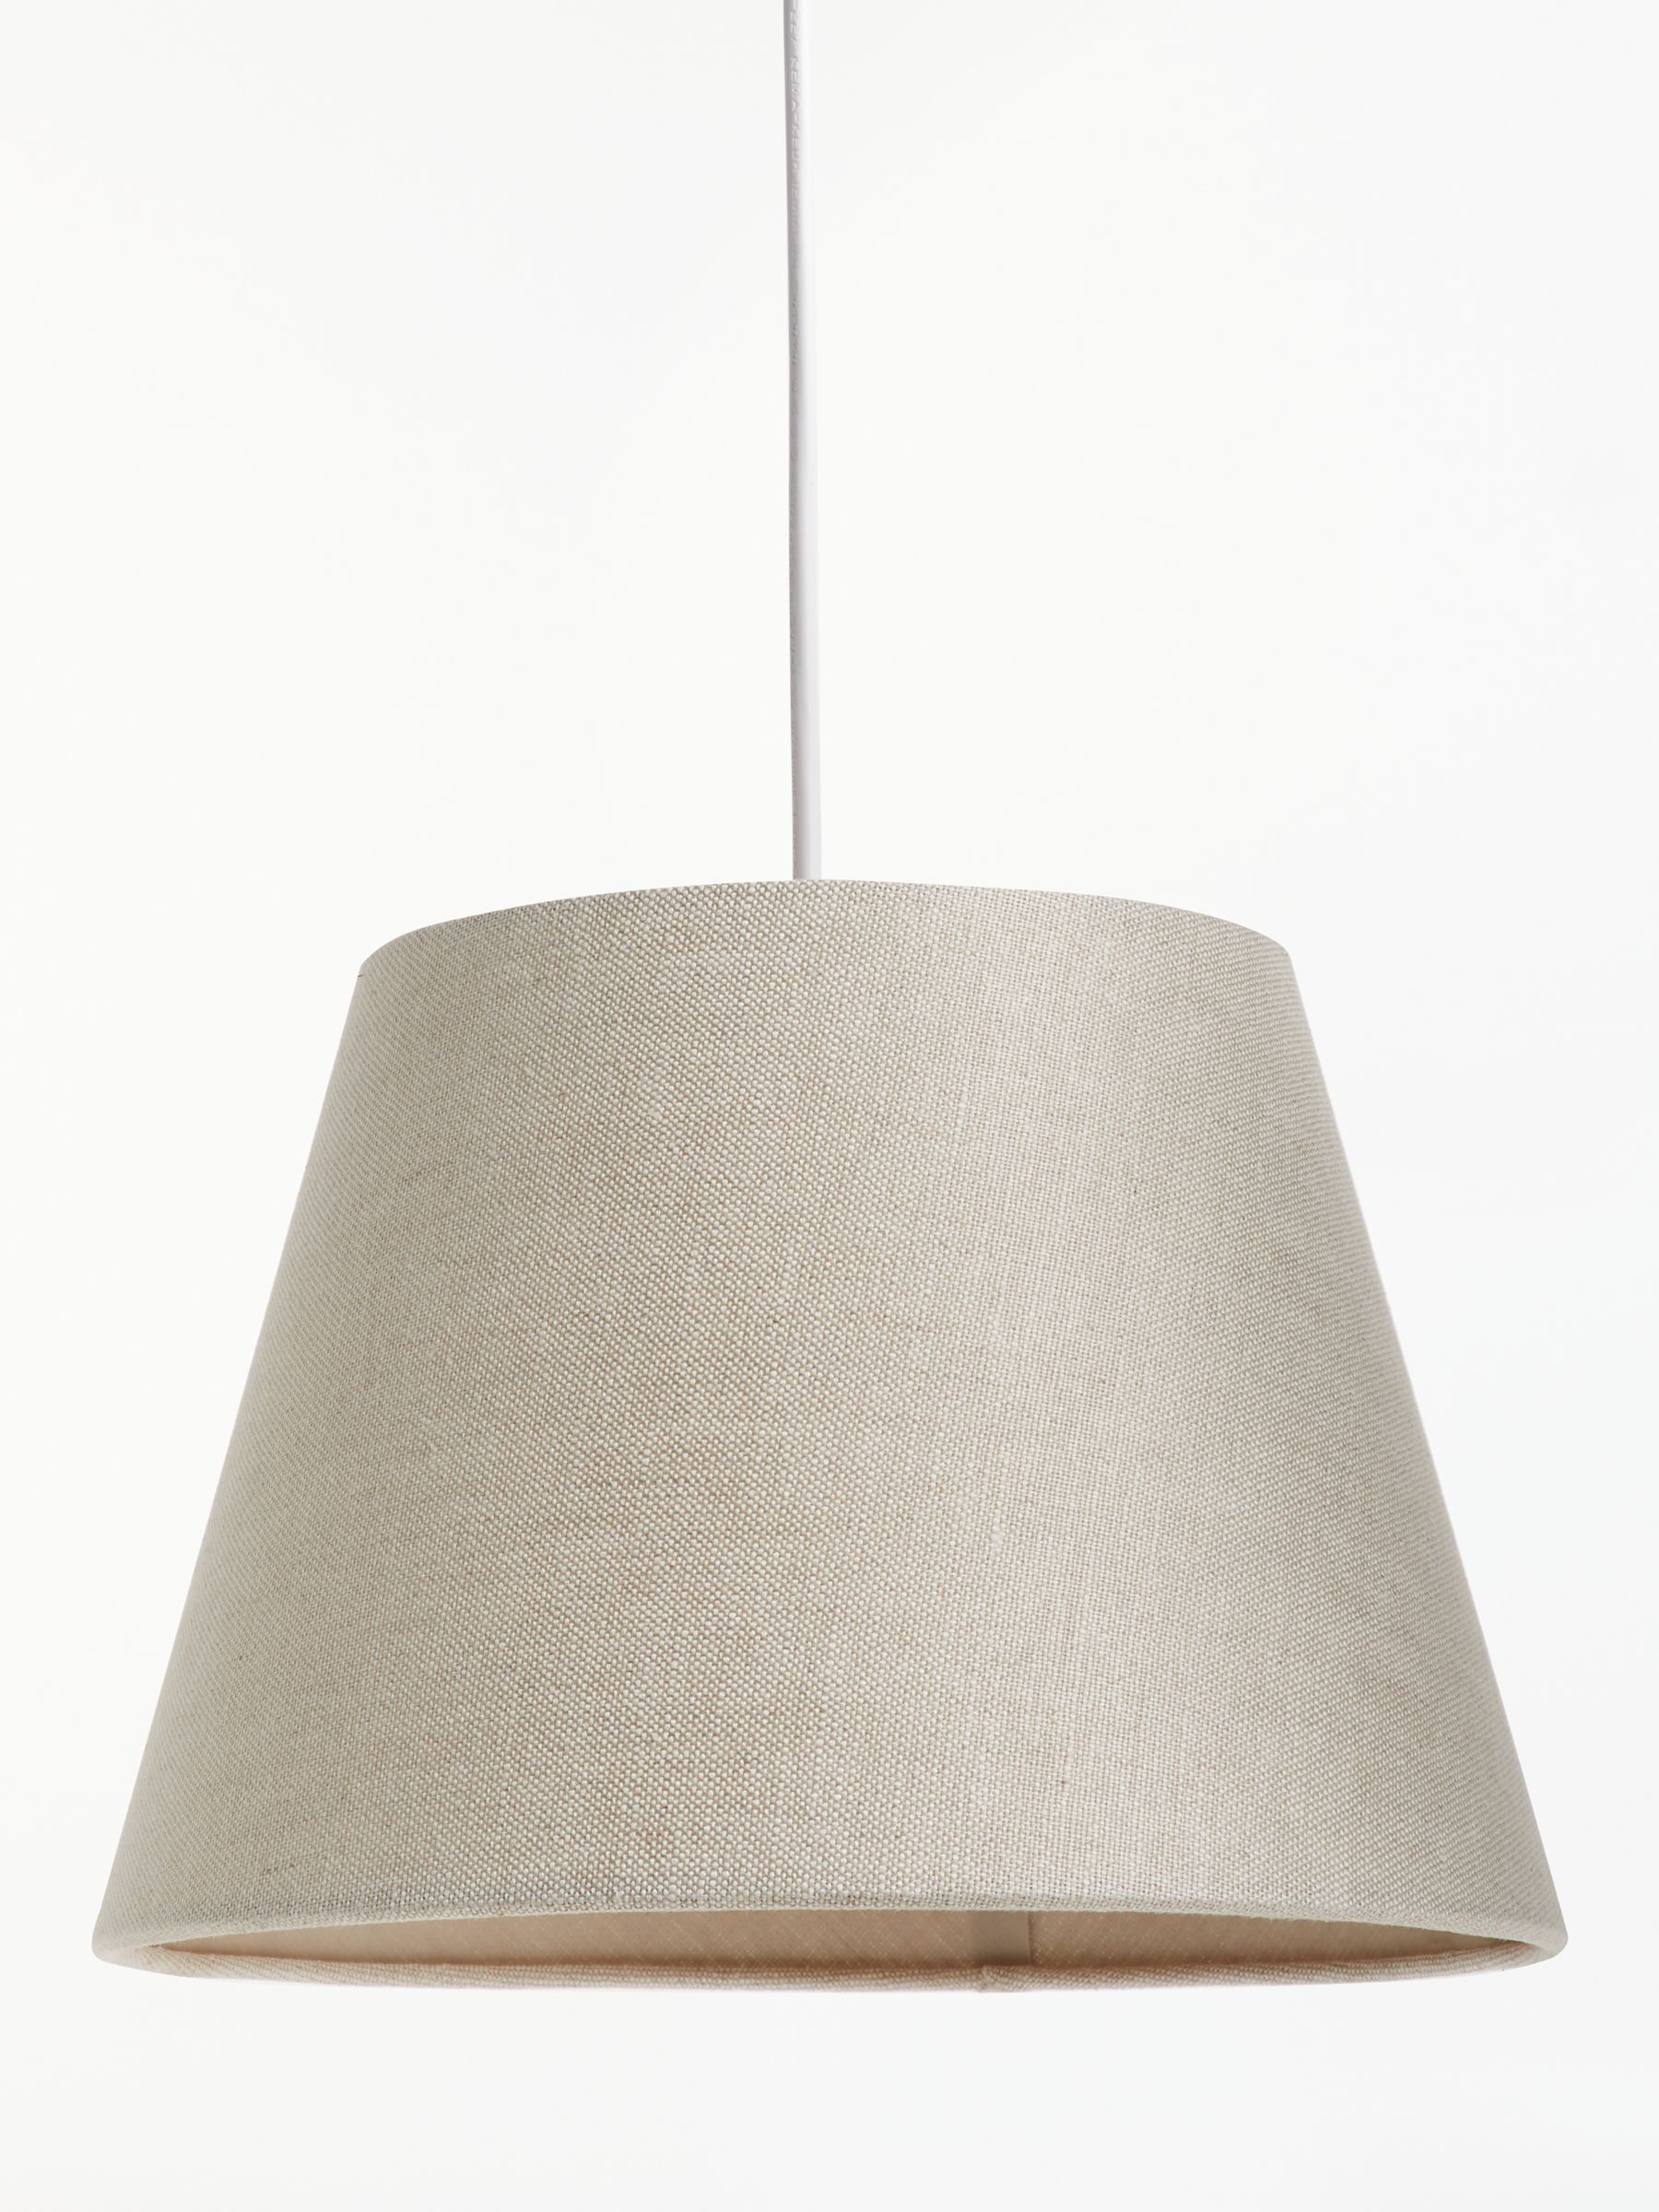 John Lewis Partners Sophia Pure Linen Tapered Lampshade Natural Pure Products Lamp Shades Ceiling Lamp Shades